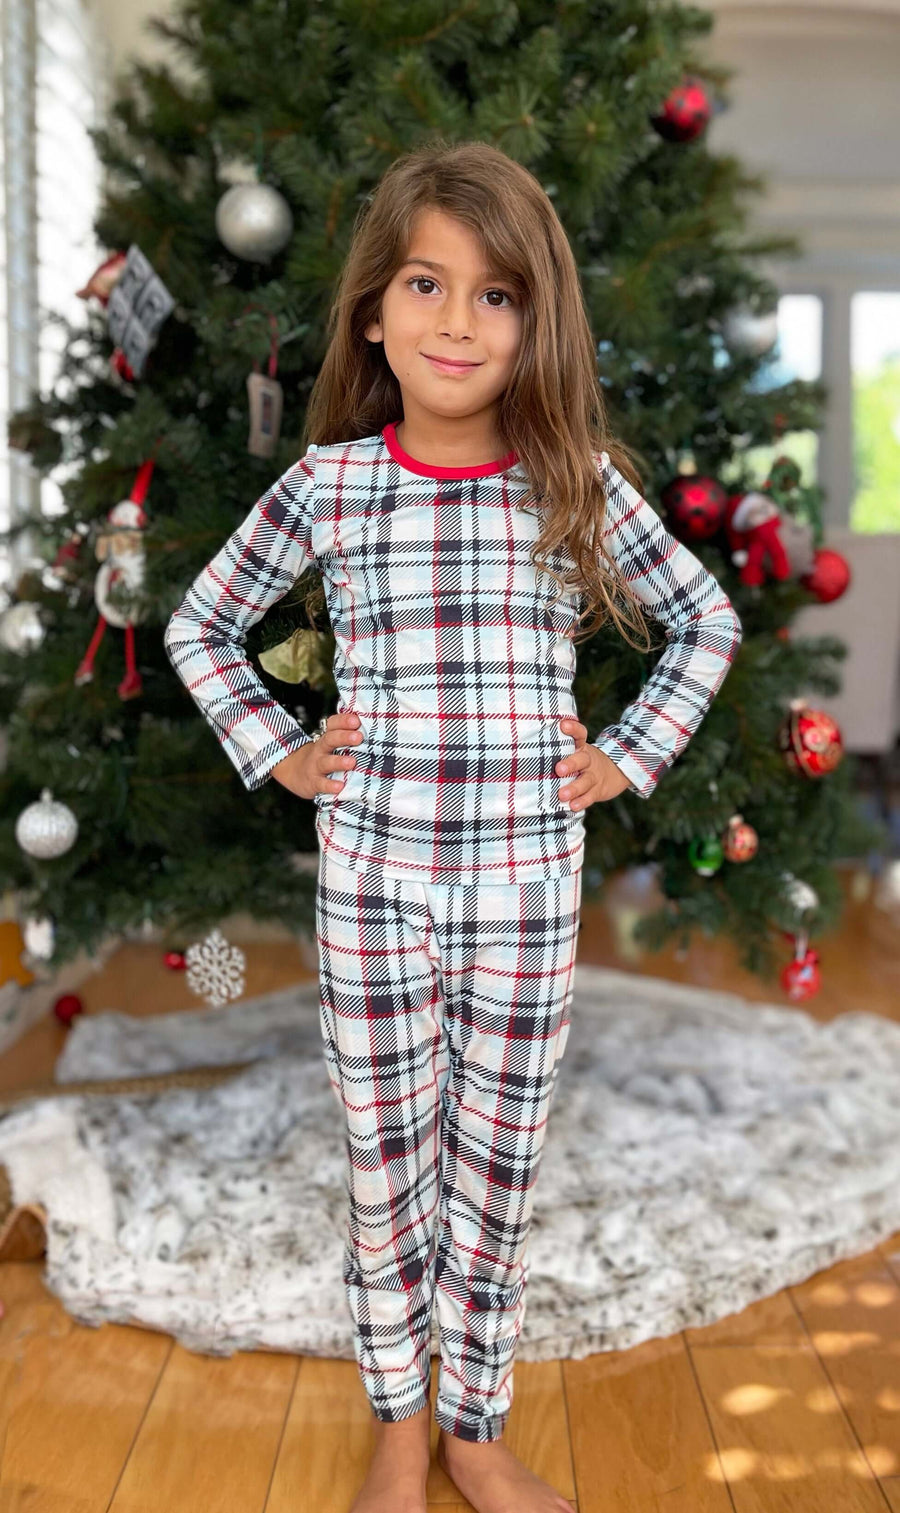 Limited Edition! Holiday Plaid Bamboo Kids Pajamas Two-Piece Set